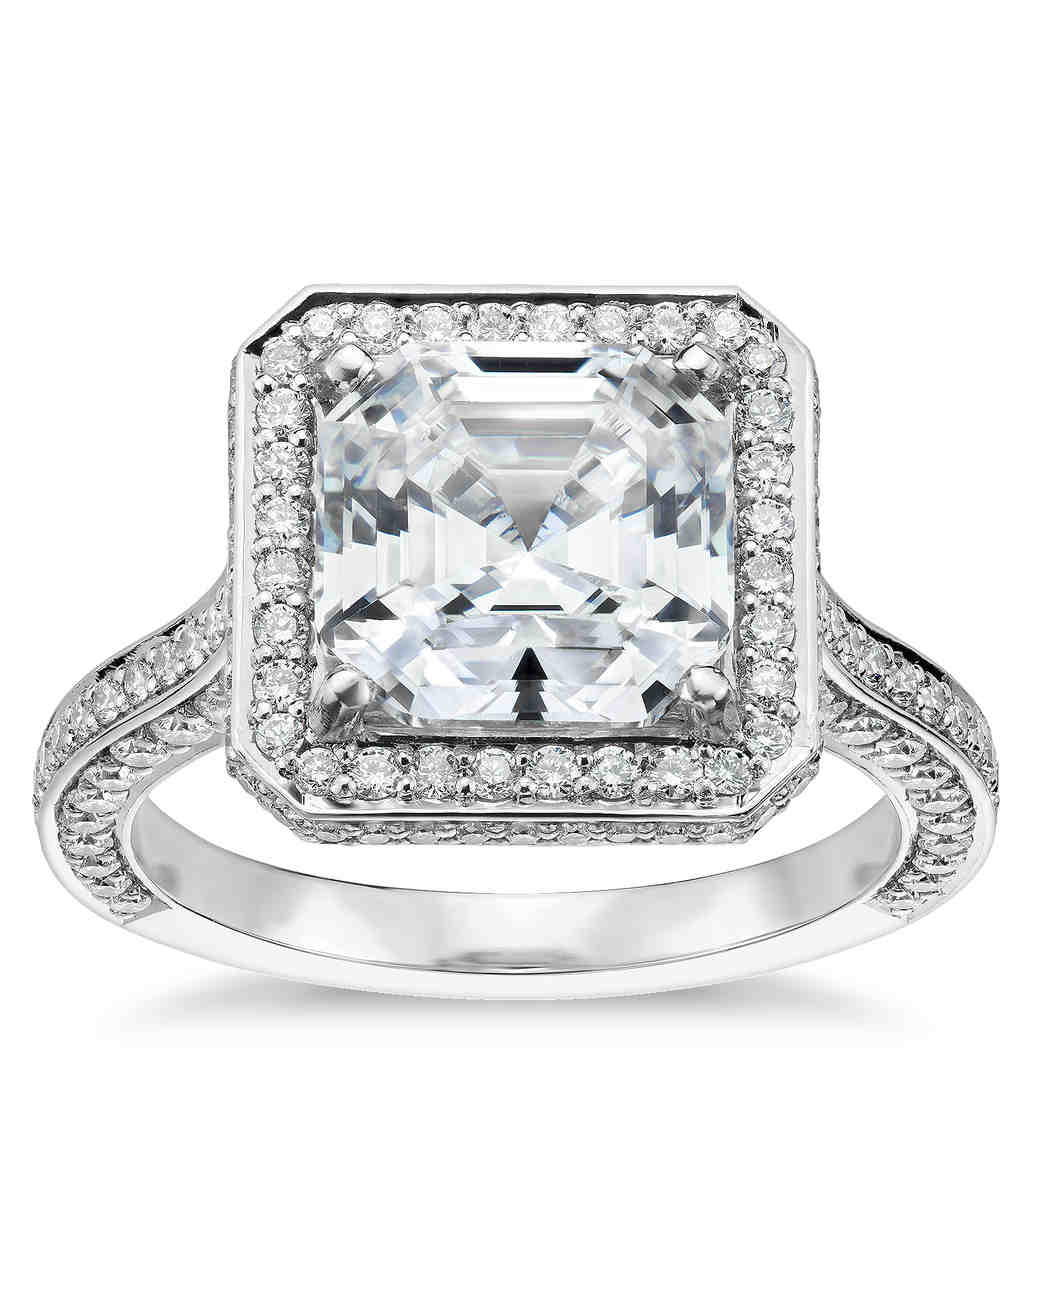 Blue Nile Studio Asscher Cut Royal Halo Diamond Engagement Ring